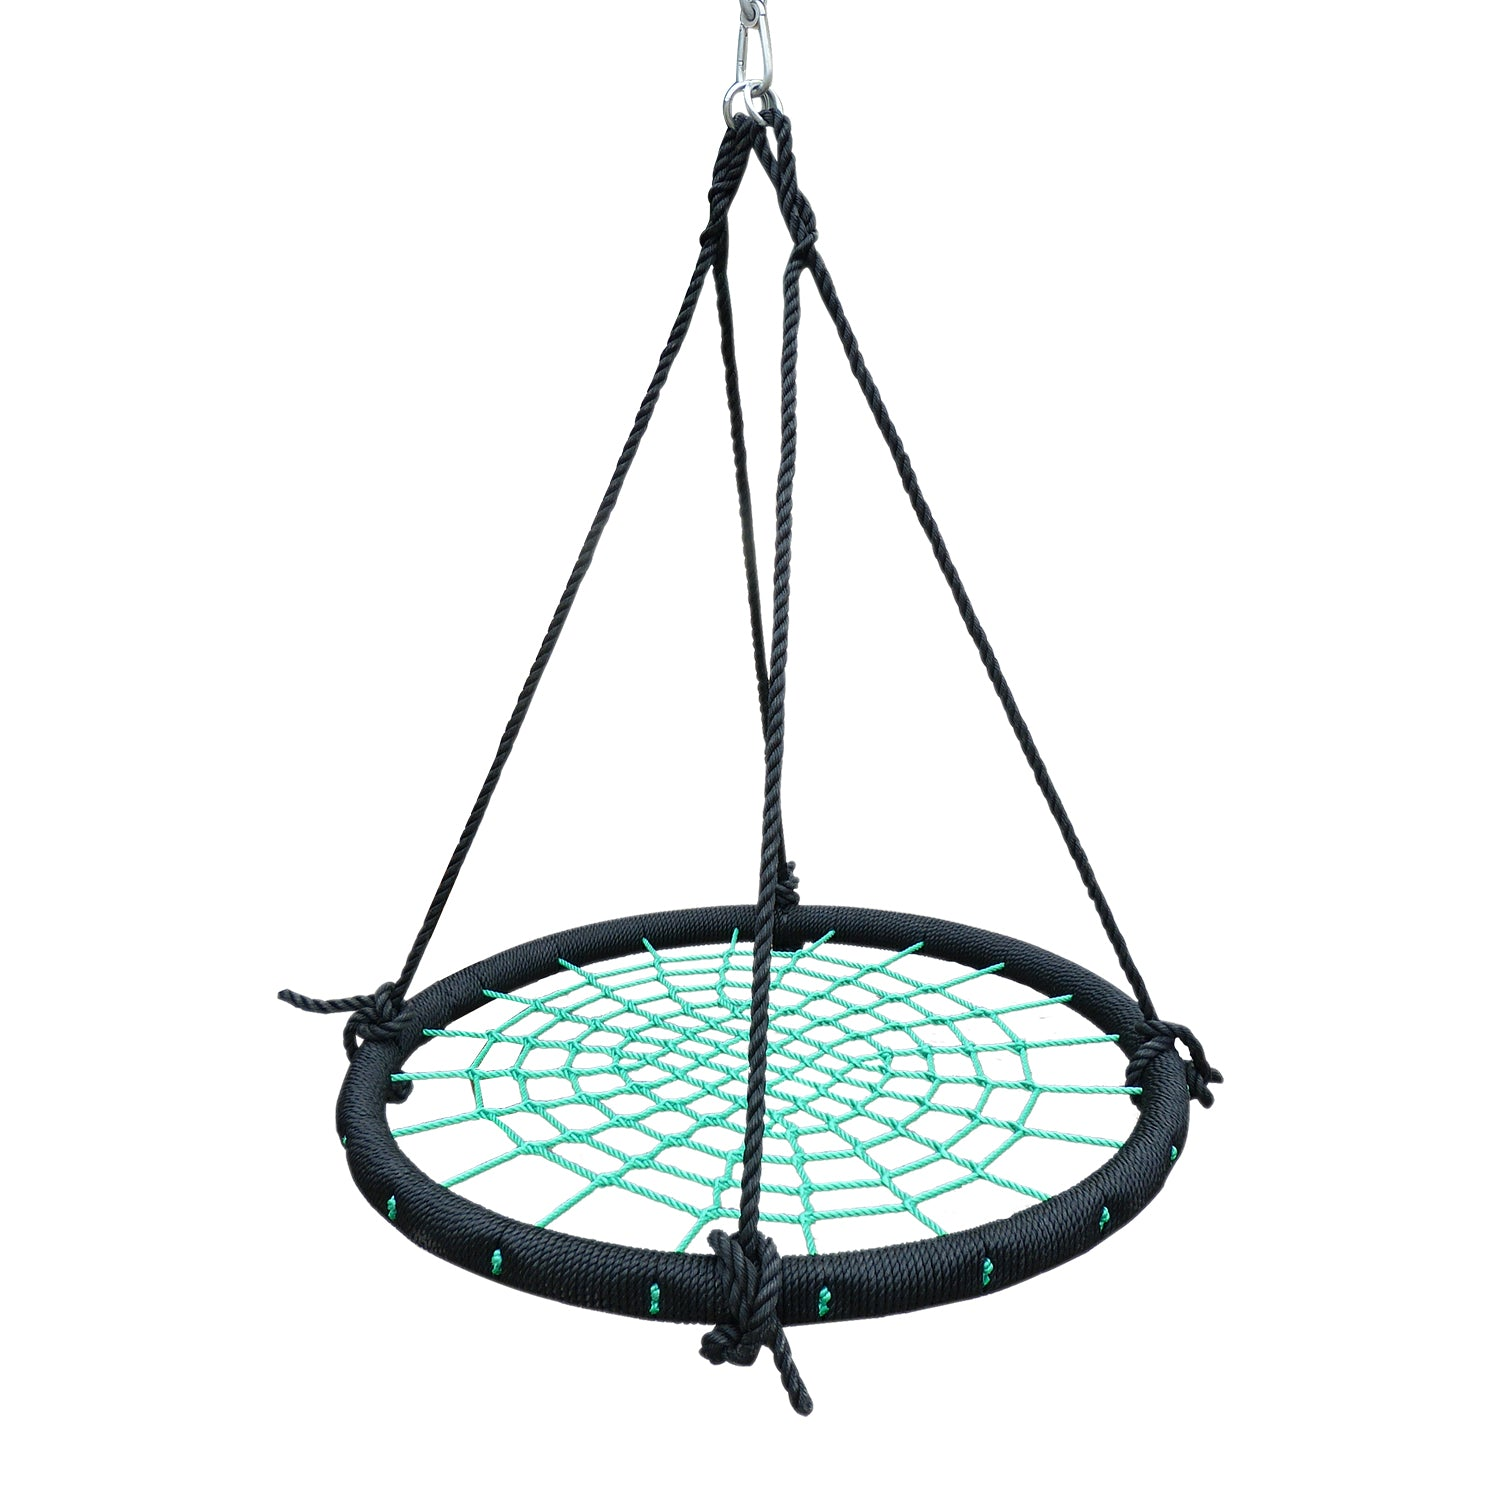 Lifespan Kids Spidey 2 Web Swing 60cm